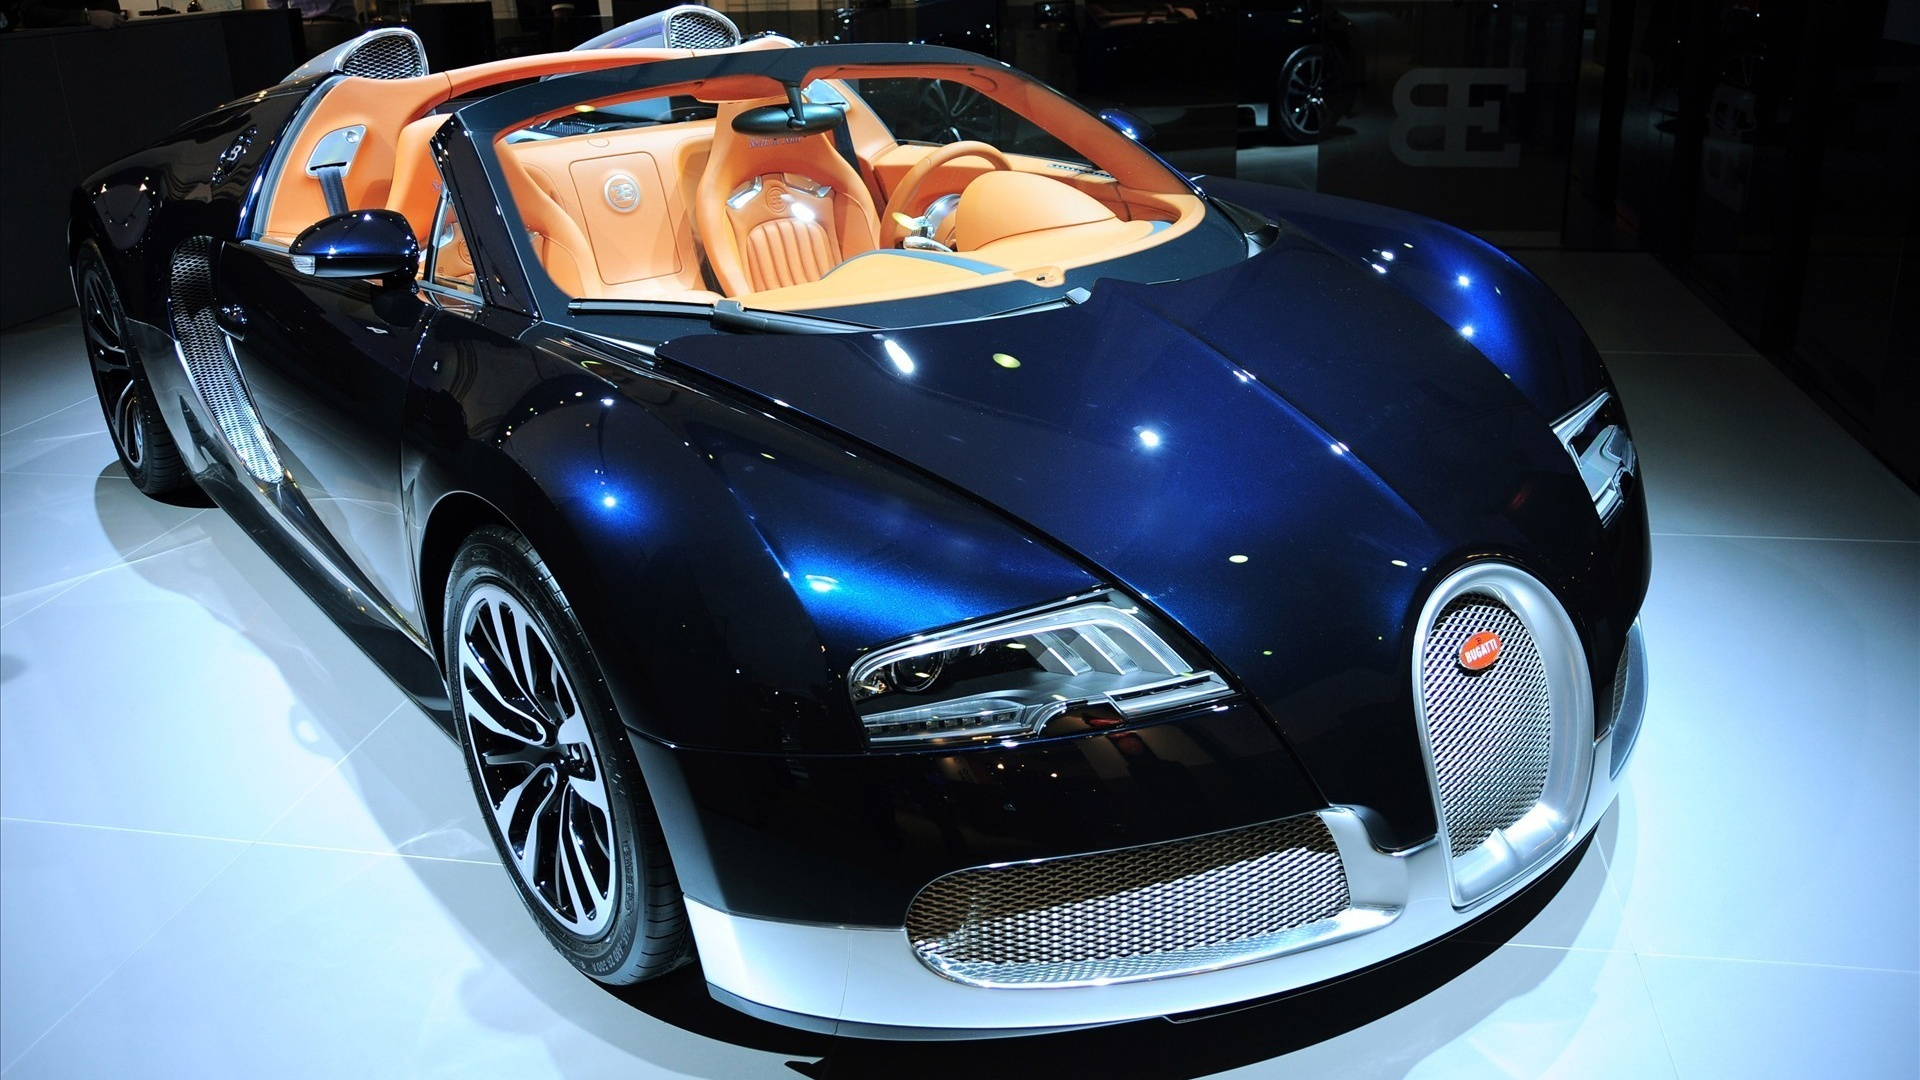 Luxury Vehicle: Wallpaper Bugatti Luxury Sports Car 1920x1200 HD Picture